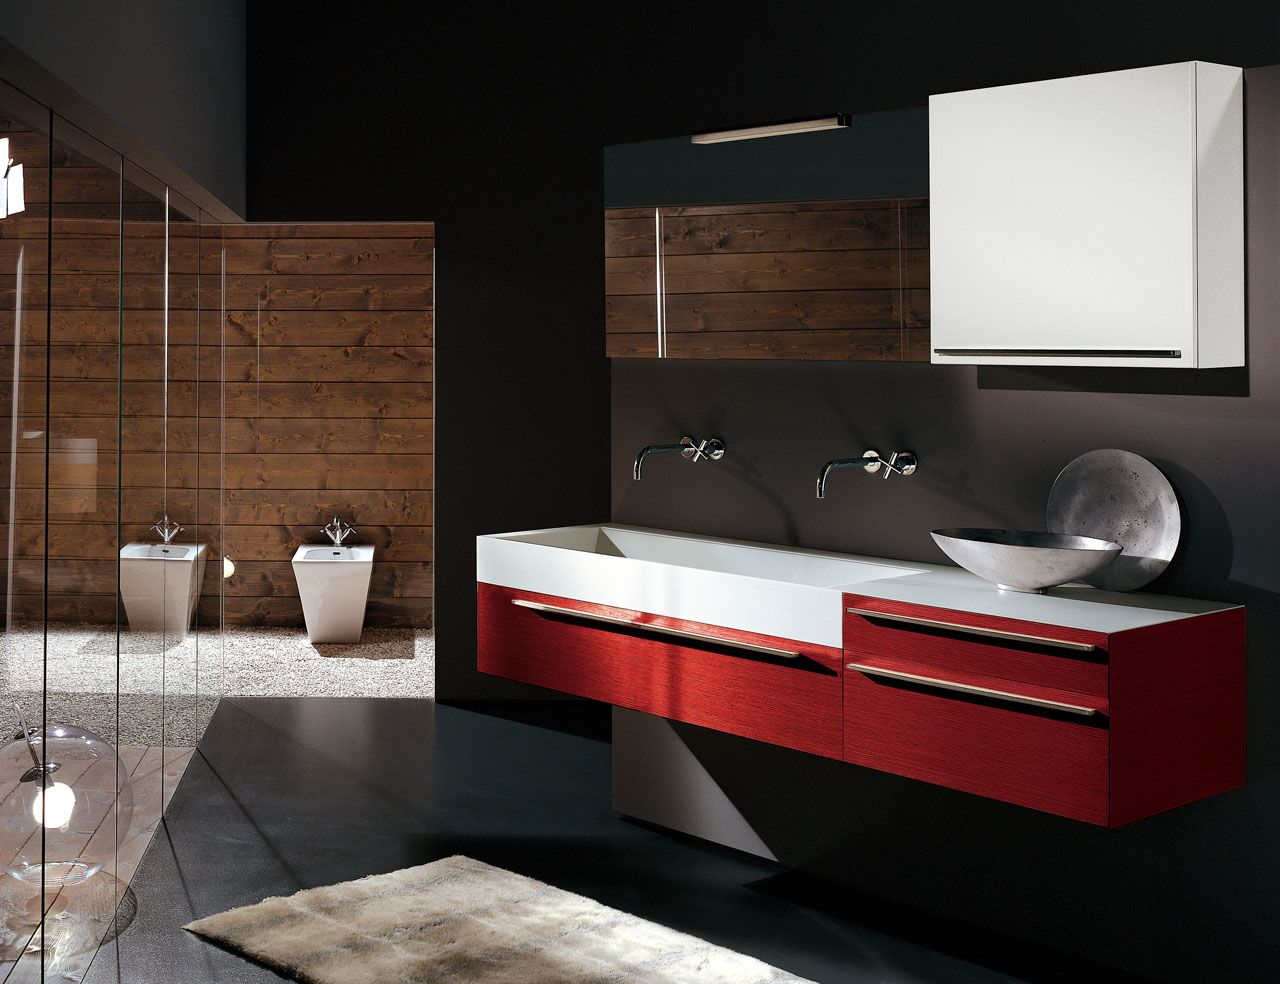 Asian bathroom vanity cabinets - Contemporary Asian Bathroom Design Fancy Bathroom Vanity Images